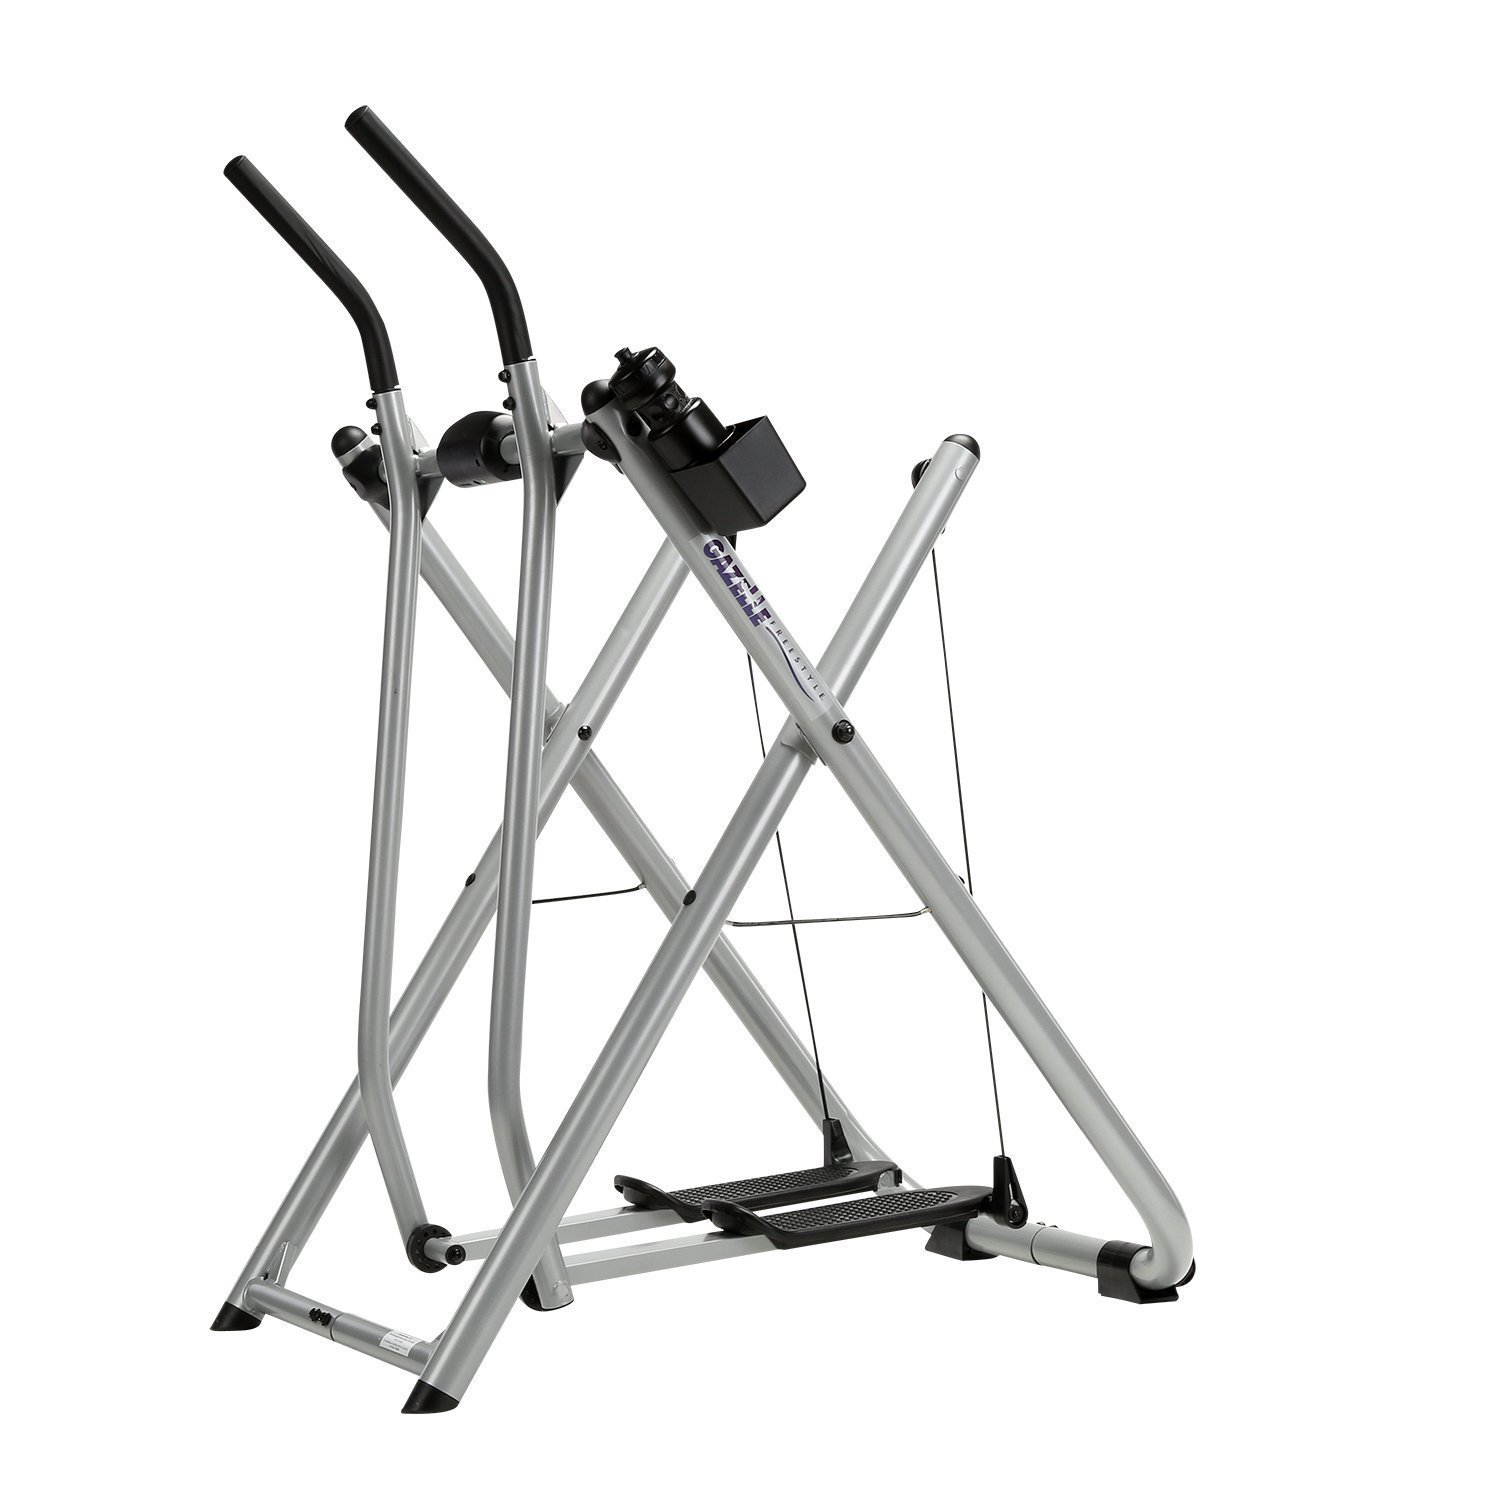 the best elliptical trainer under 200? Gazelle Freestyle Step Machines is our number one pick